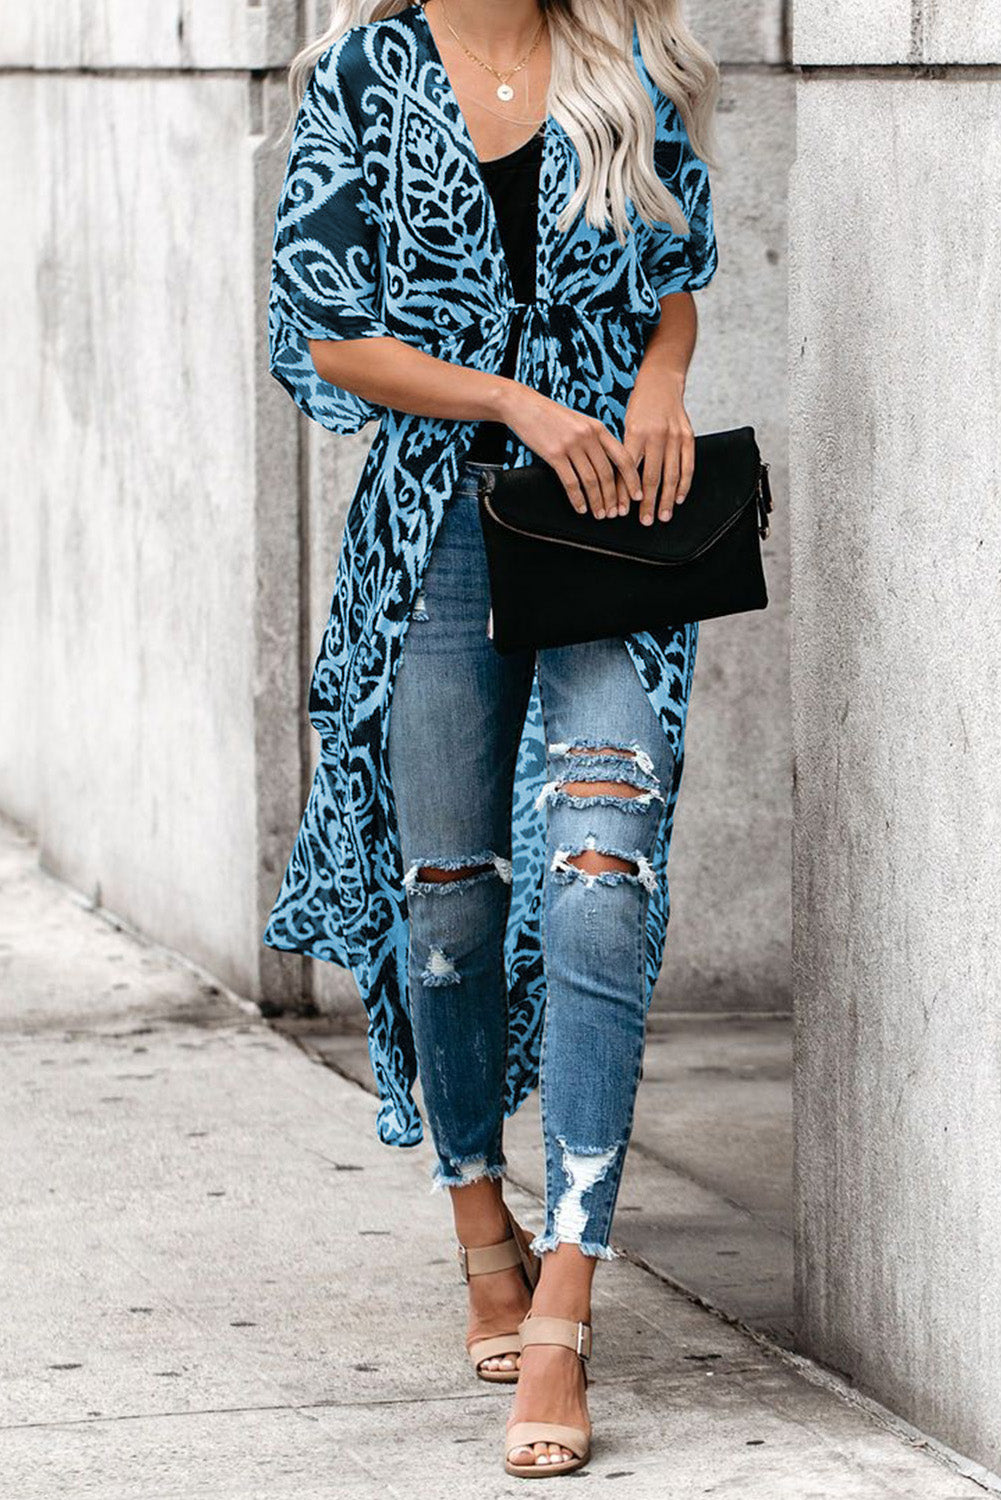 Blue Printed Duster Kimono Beach Dresses Discount Designer Fashion Clothes Shoes Bags Women Men Kids Children Black Owned Business